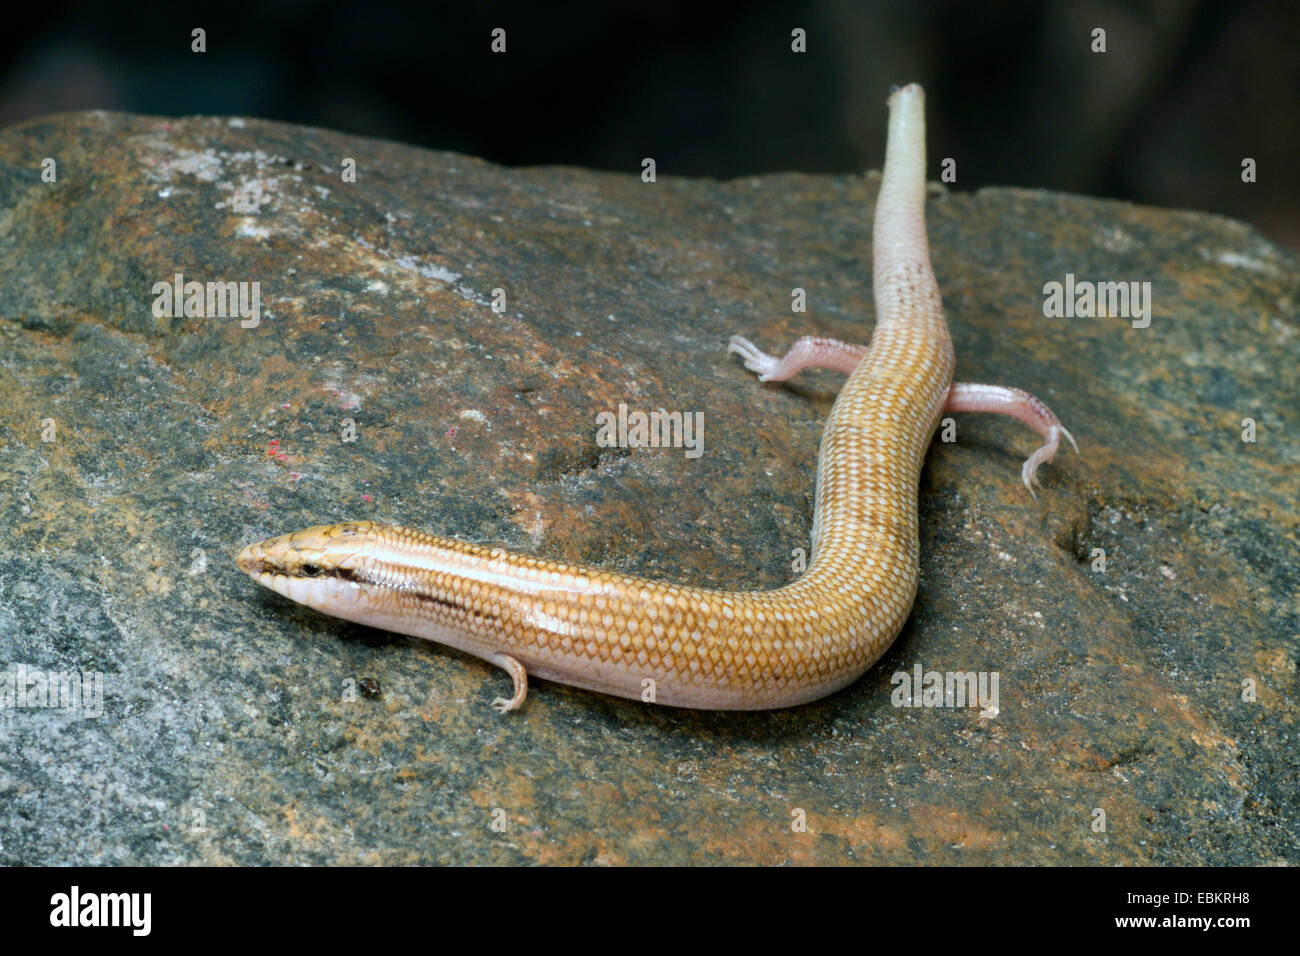 Wedge-snouted skink, Elongated barrel skink (Chalcides sepsoides), on a stone - Stock Image